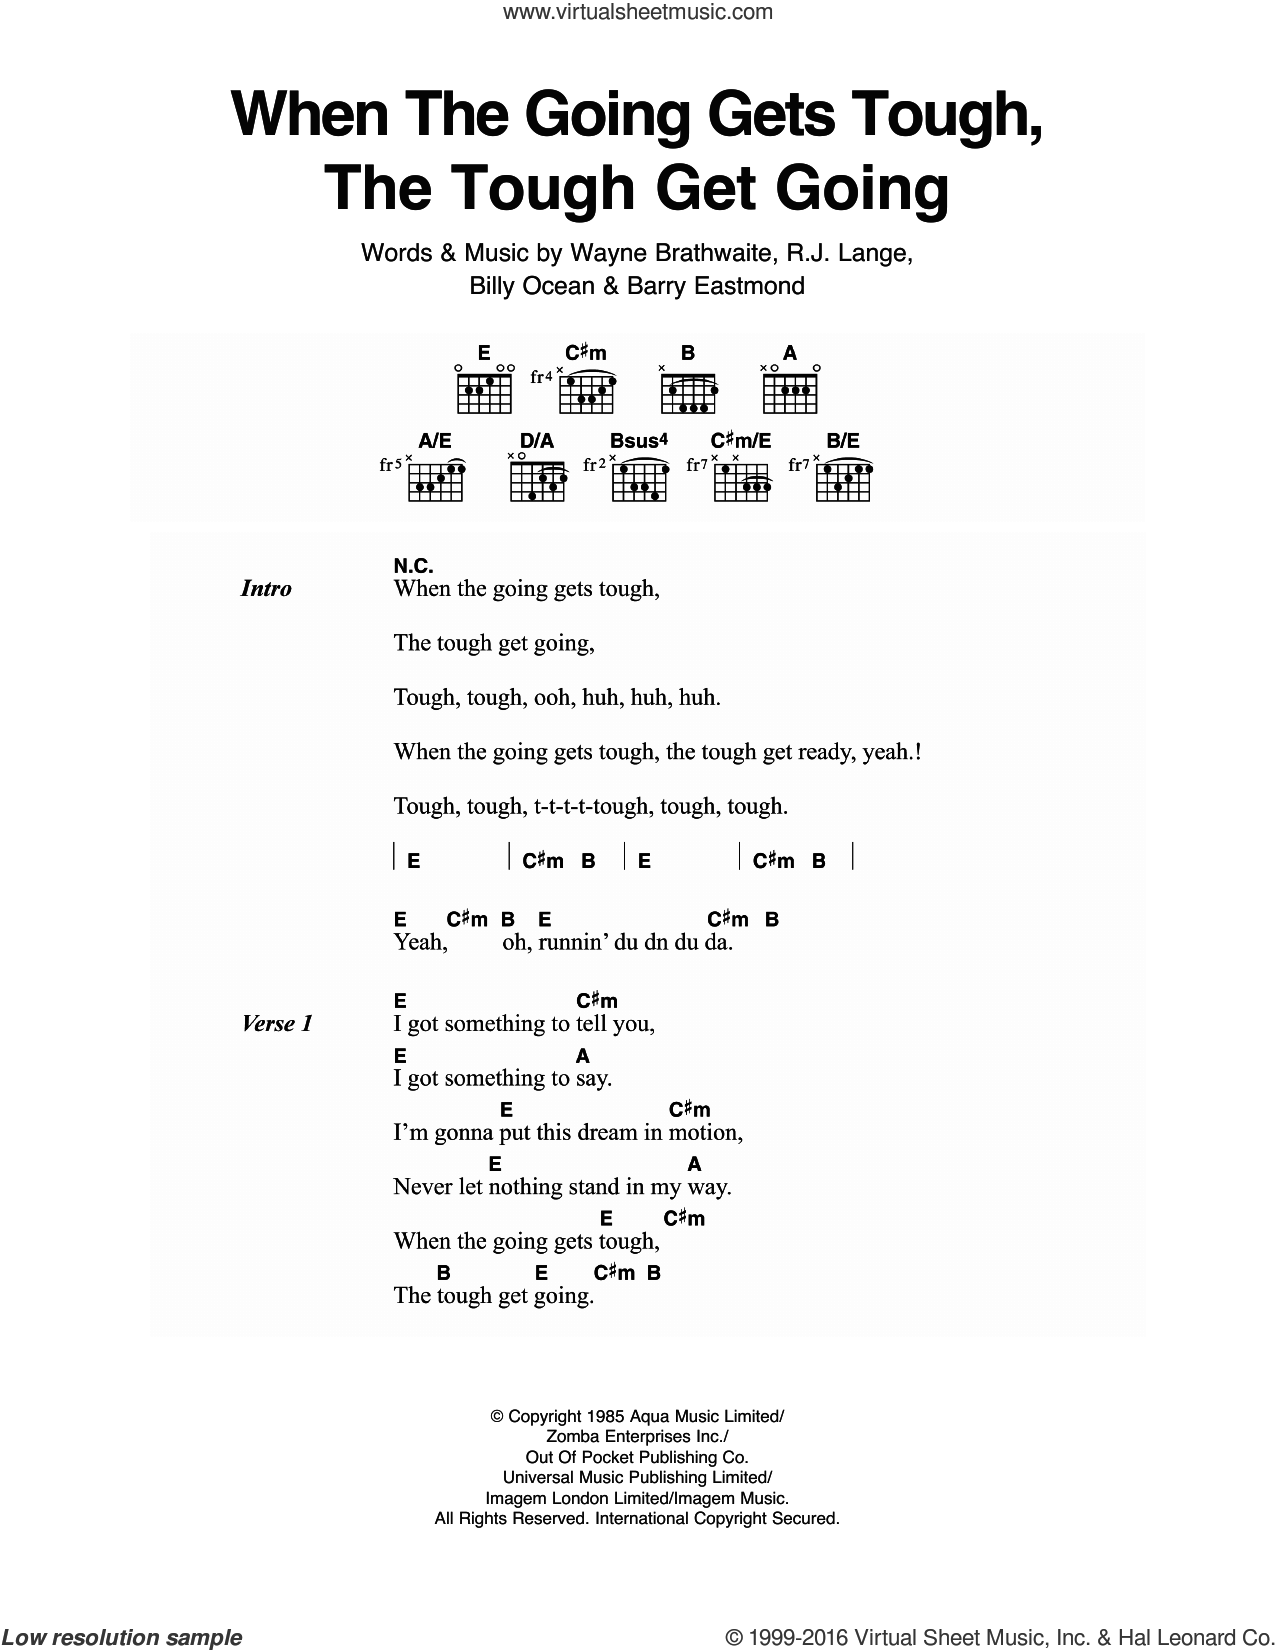 When The Going Gets Tough, The Tough Get Going sheet music for guitar (chords) by Billy Ocean, Barry Eastmond, Robert John Lange and Wayne Brathwaite, intermediate skill level